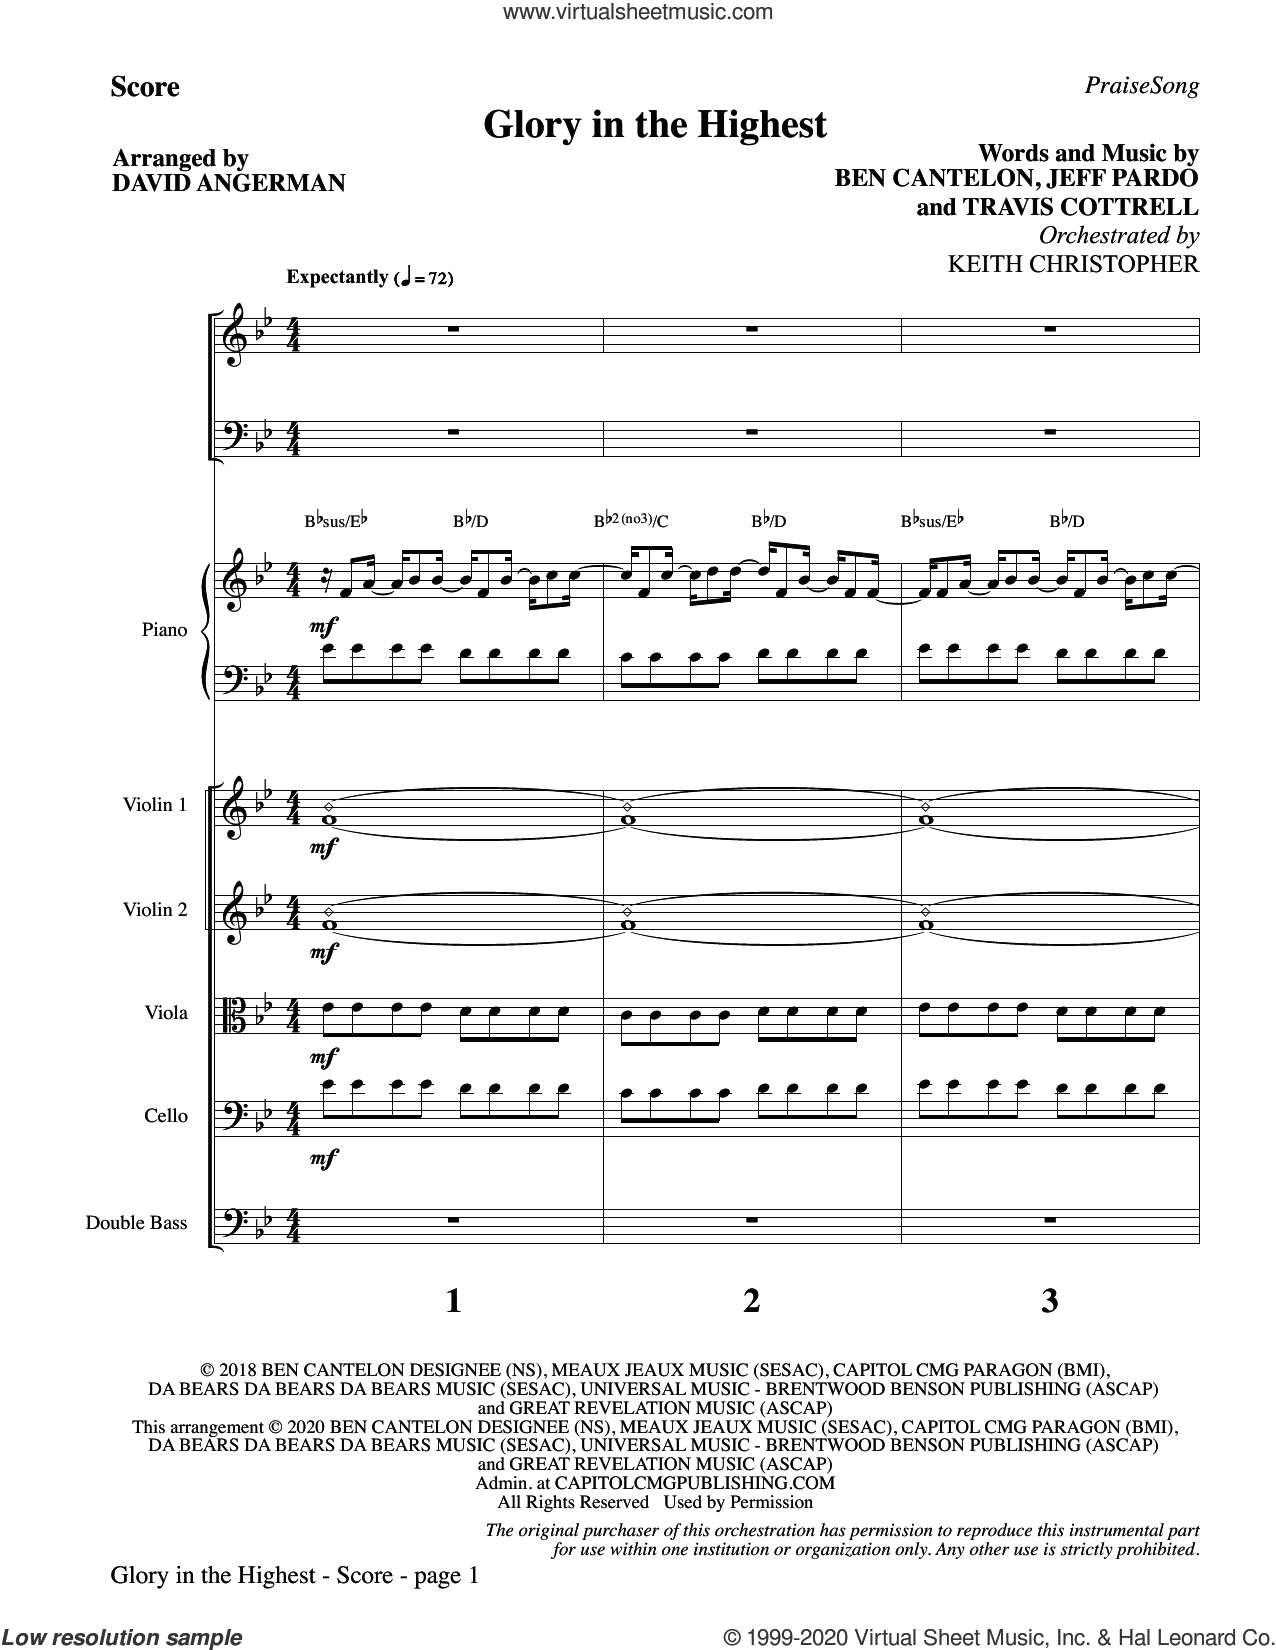 Glory In The Highest (arr. David Angerman) (COMPLETE) sheet music for orchestra/band by David Angerman, Ben Cantelon, Jeff Pardo and Travis Cottrell, intermediate skill level